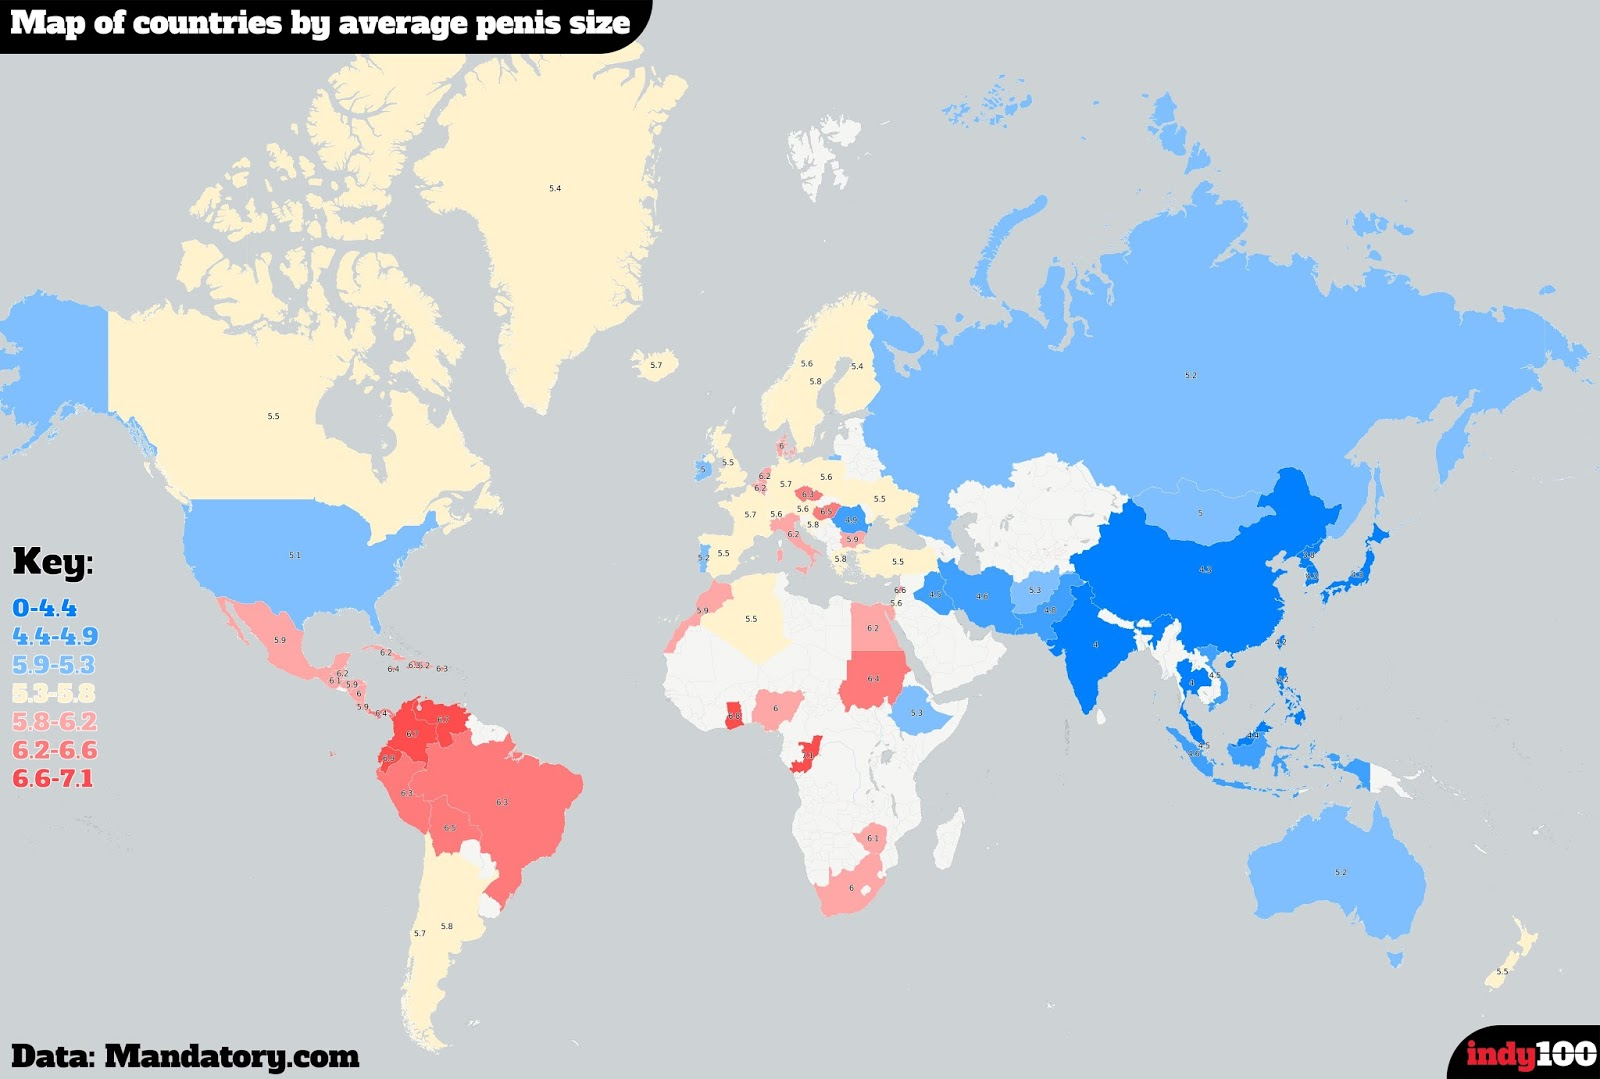 Map of countries by average penis size